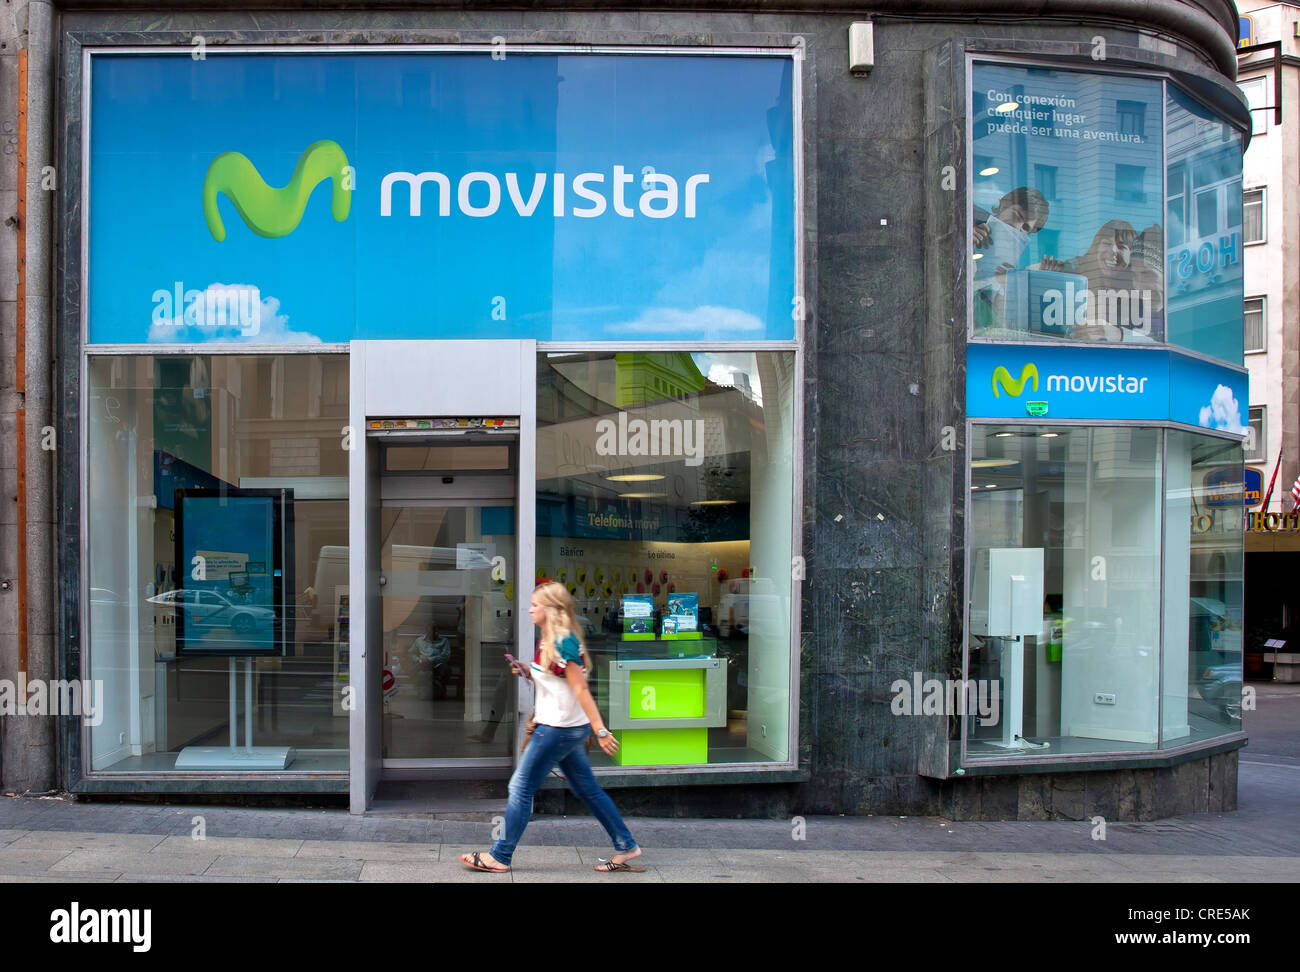 Branch of the Spanish mobile operator Movistar, in Madrid, Spain, Europe Stock Photo